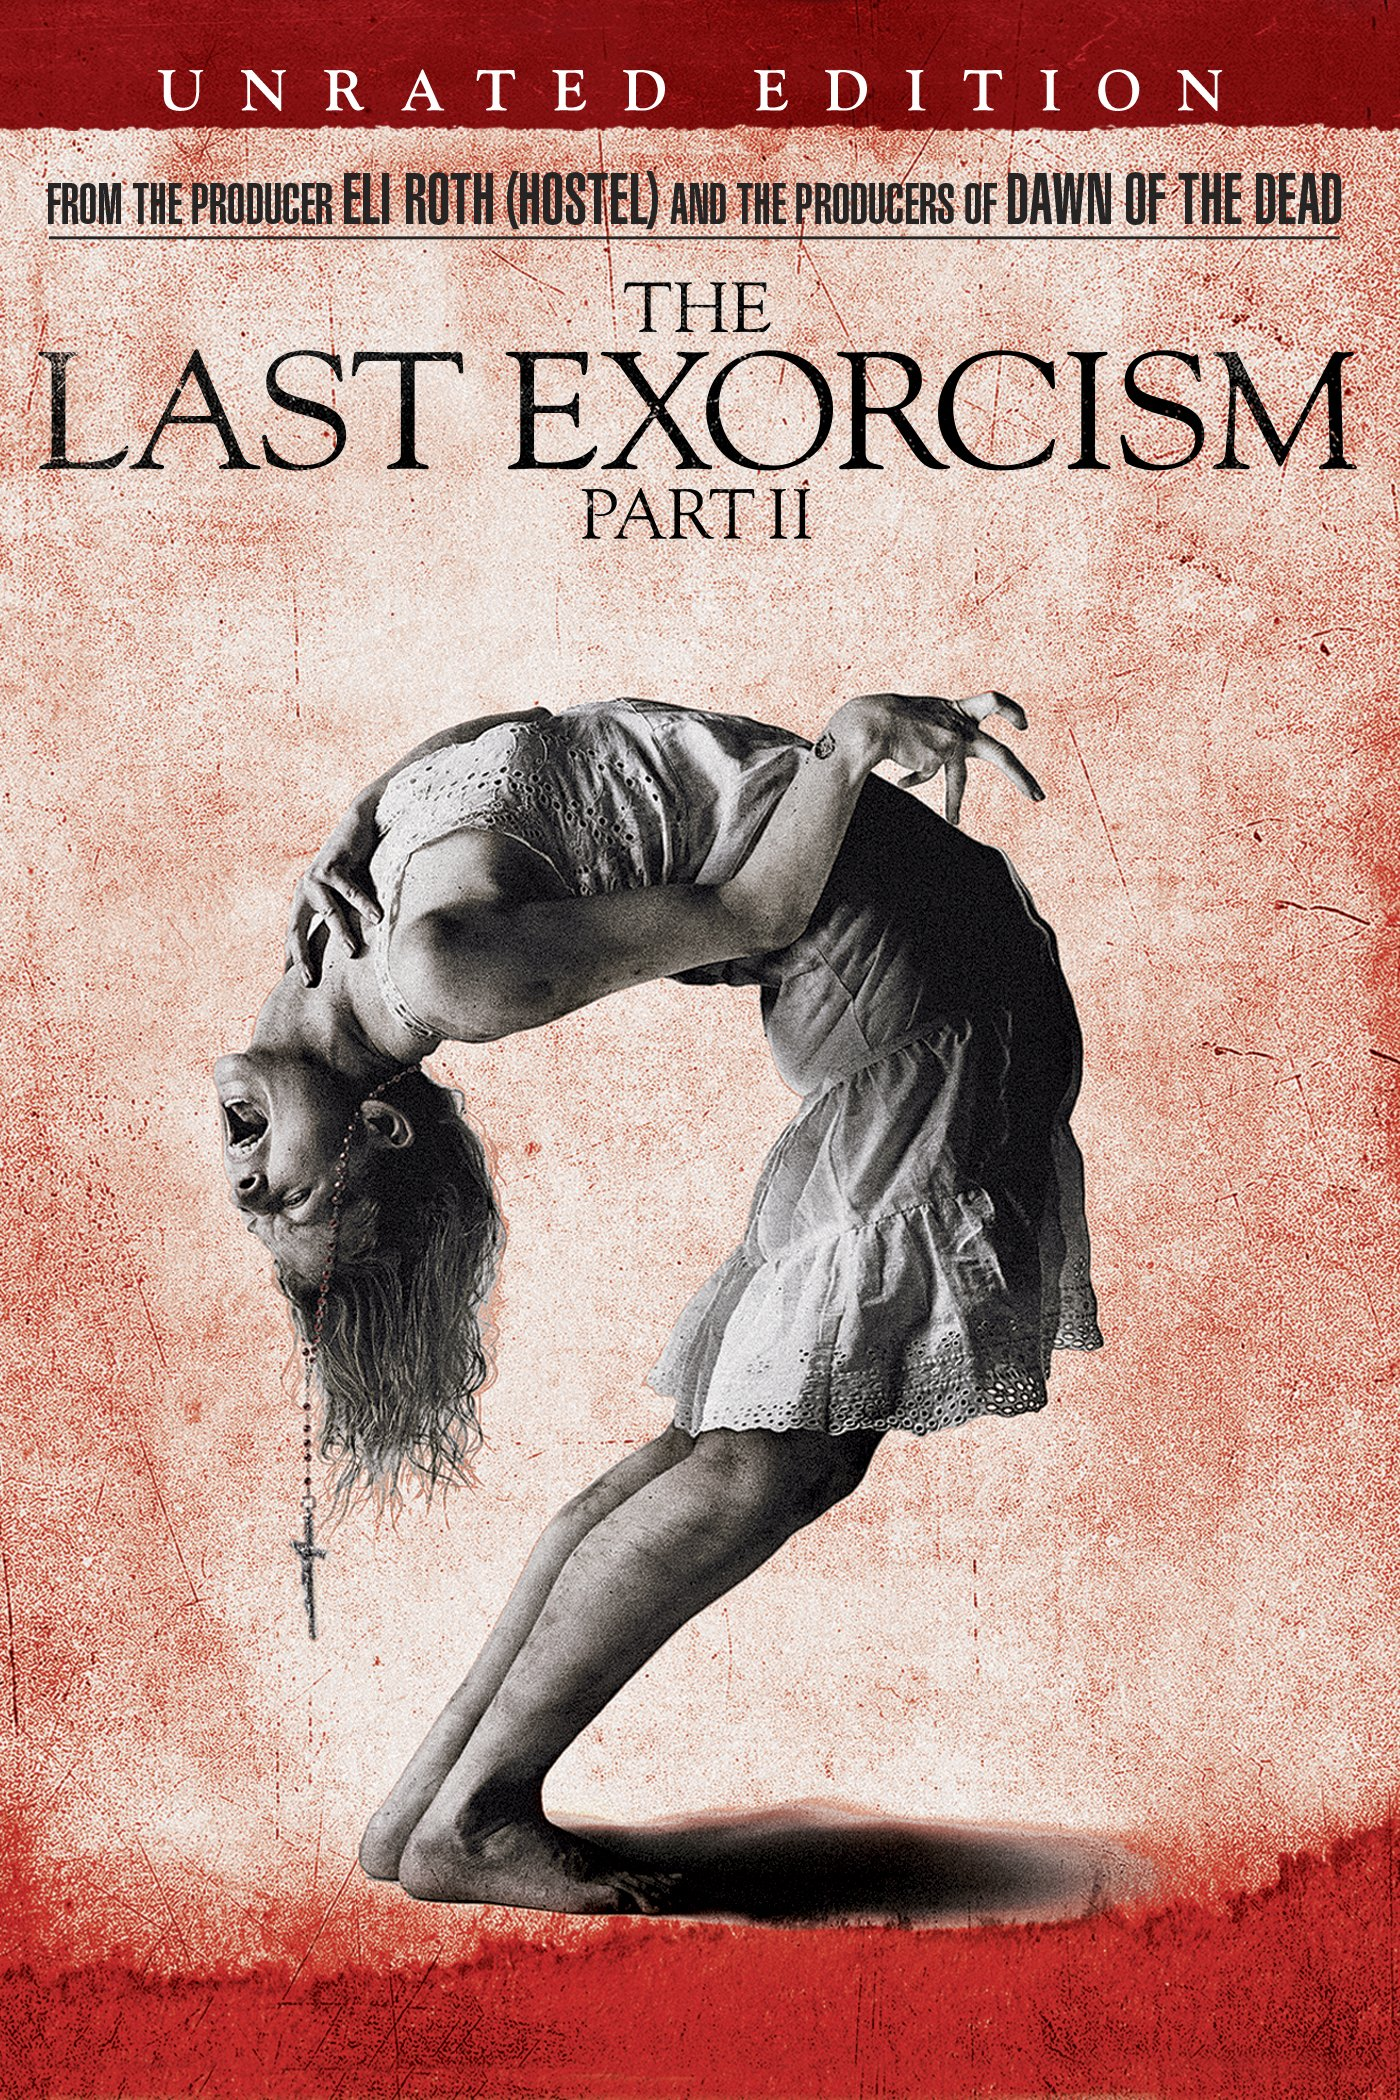 The last exorcism part ii wikipedia.